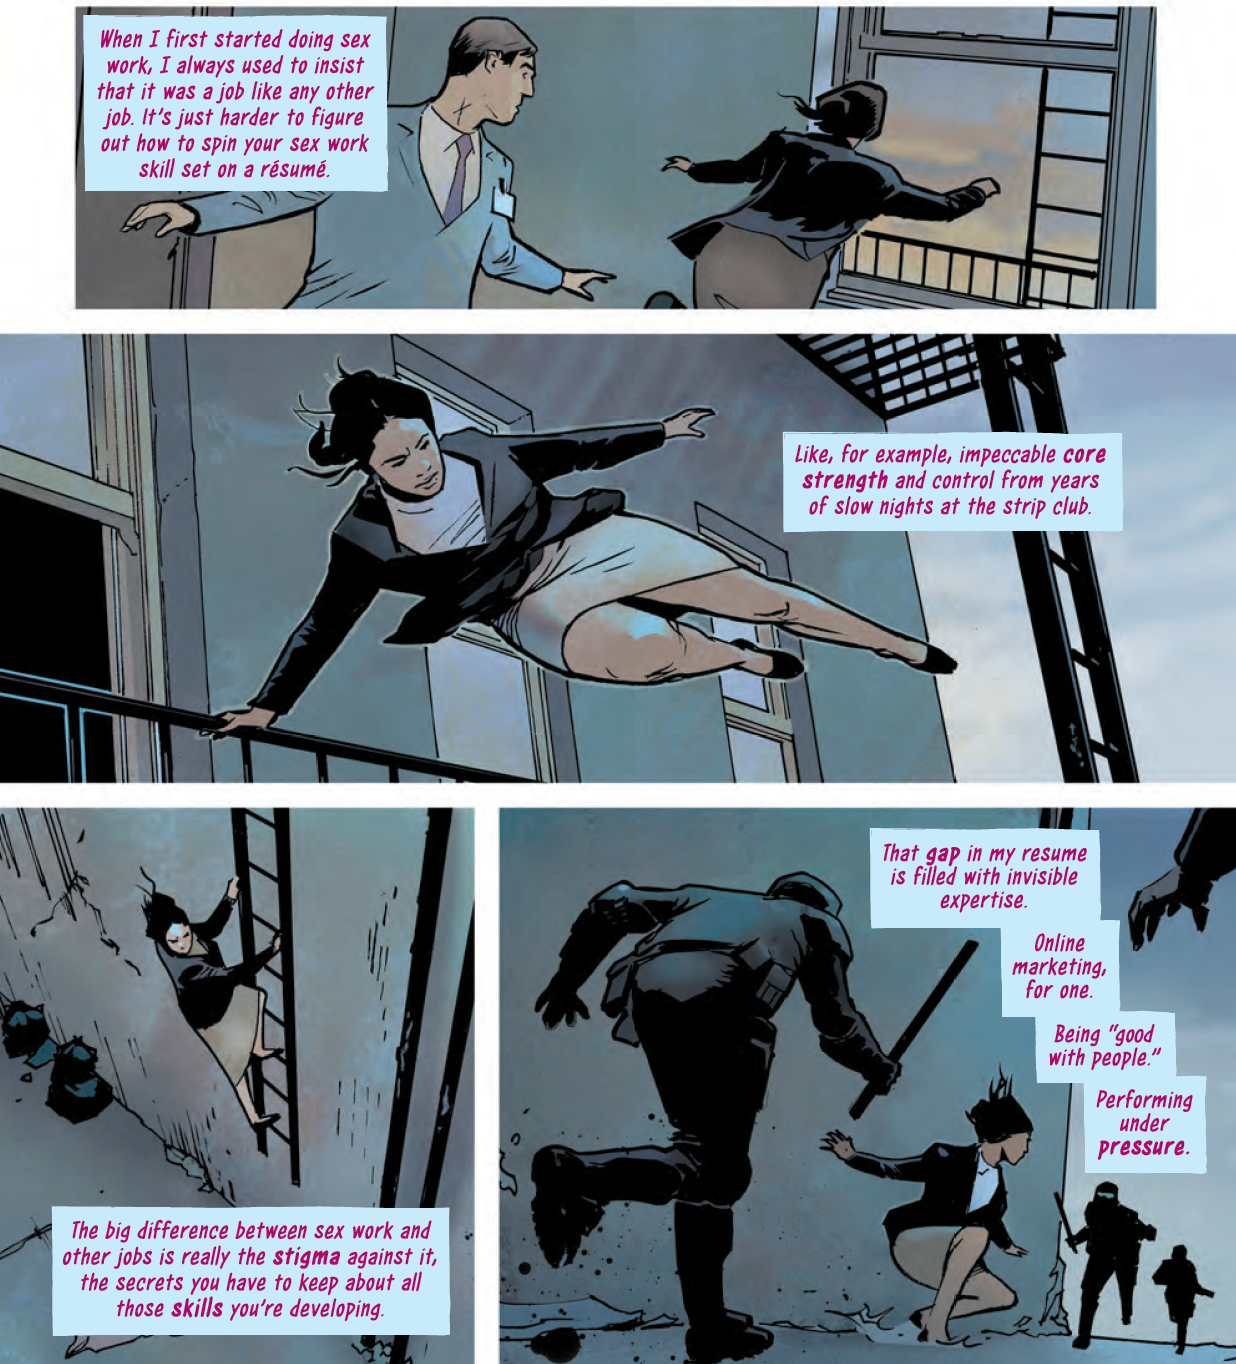 """Panel 1: In a wide shot, Avory is sprinting toward an open fire escape in professional officewear while a man in a suit and tie and name tag turns to try to chase her. A text box floats on the side, saying """"When I first started doing sex work, I always used to insist it was a job like any other job. It's just harder to figure out how to spin your sex work skill set on a résumé."""" Panel 2: Avory is through the fire escape and ably hoisting herself over the guardrail around the balcony, even in a pencil skirt and heels. A text box reads """"Like, for example, impeccable core strength and control from years of slow nights at the strip club."""" Panel 3: Avory climbs down the fire escape ladder; a text box reads """"The big difference between sex work and other jobs is really the stigma against it, the secrets you have to keep about all these skills you're developing."""" Panel 4: Having reached the ground, Avory crouches in an alert position with her head raised looking for a next direction as riot police move in on either side of her, batons raised. A text box reads: """"That gap in my resume is filled with invisible expertise. Online marketing, for one. Being """"good with people."""" Performing under pressure."""""""